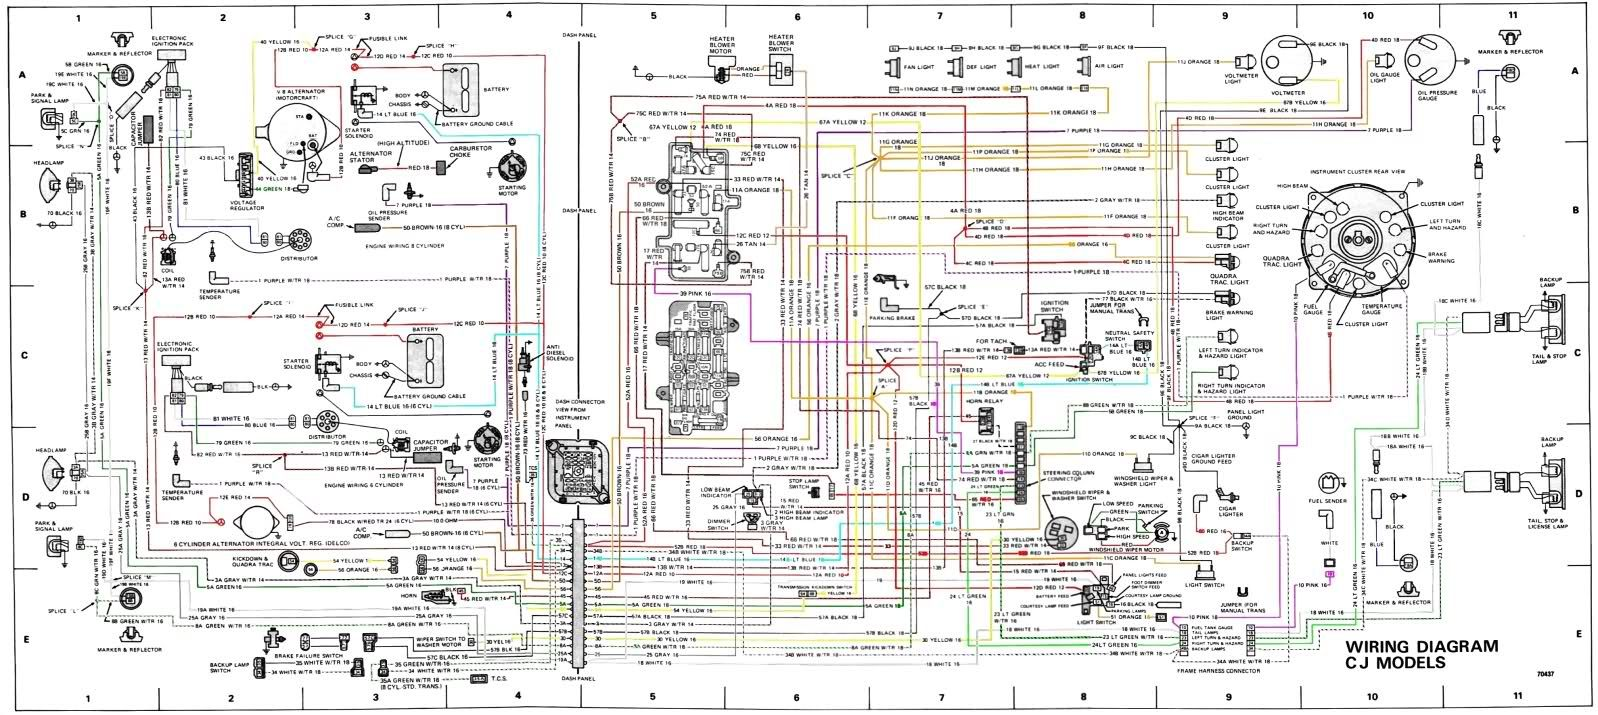 cj7 engine wiring get wiring diagram Jeep CJ7 Parts Diagram